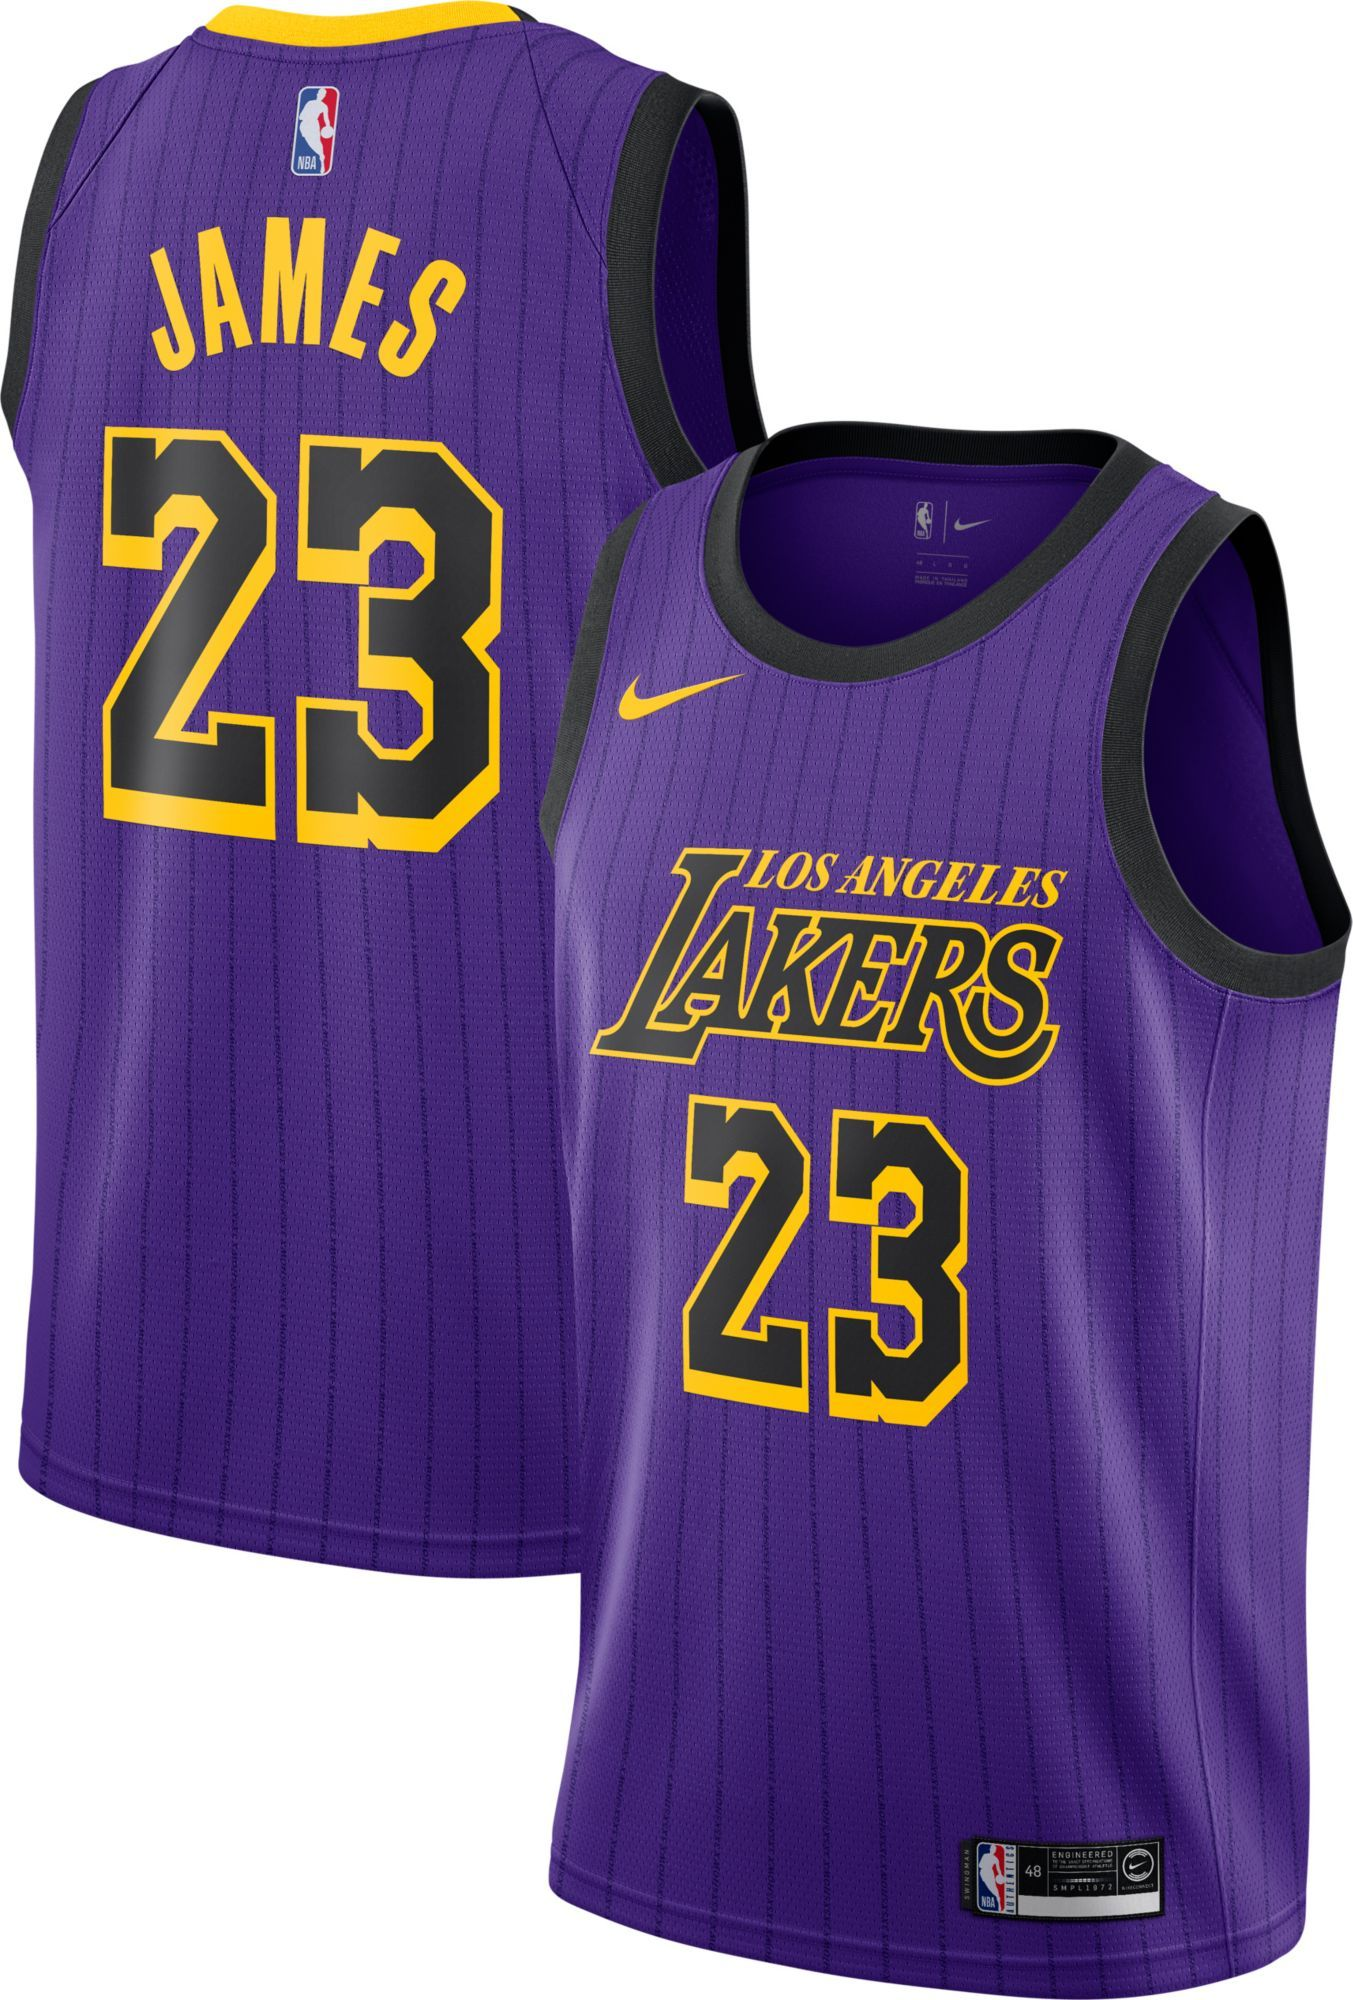 5d0b8859826 Nike Men s Los Angeles Lakers LeBron James Dri-FIT City Edition Swingman  Jersey